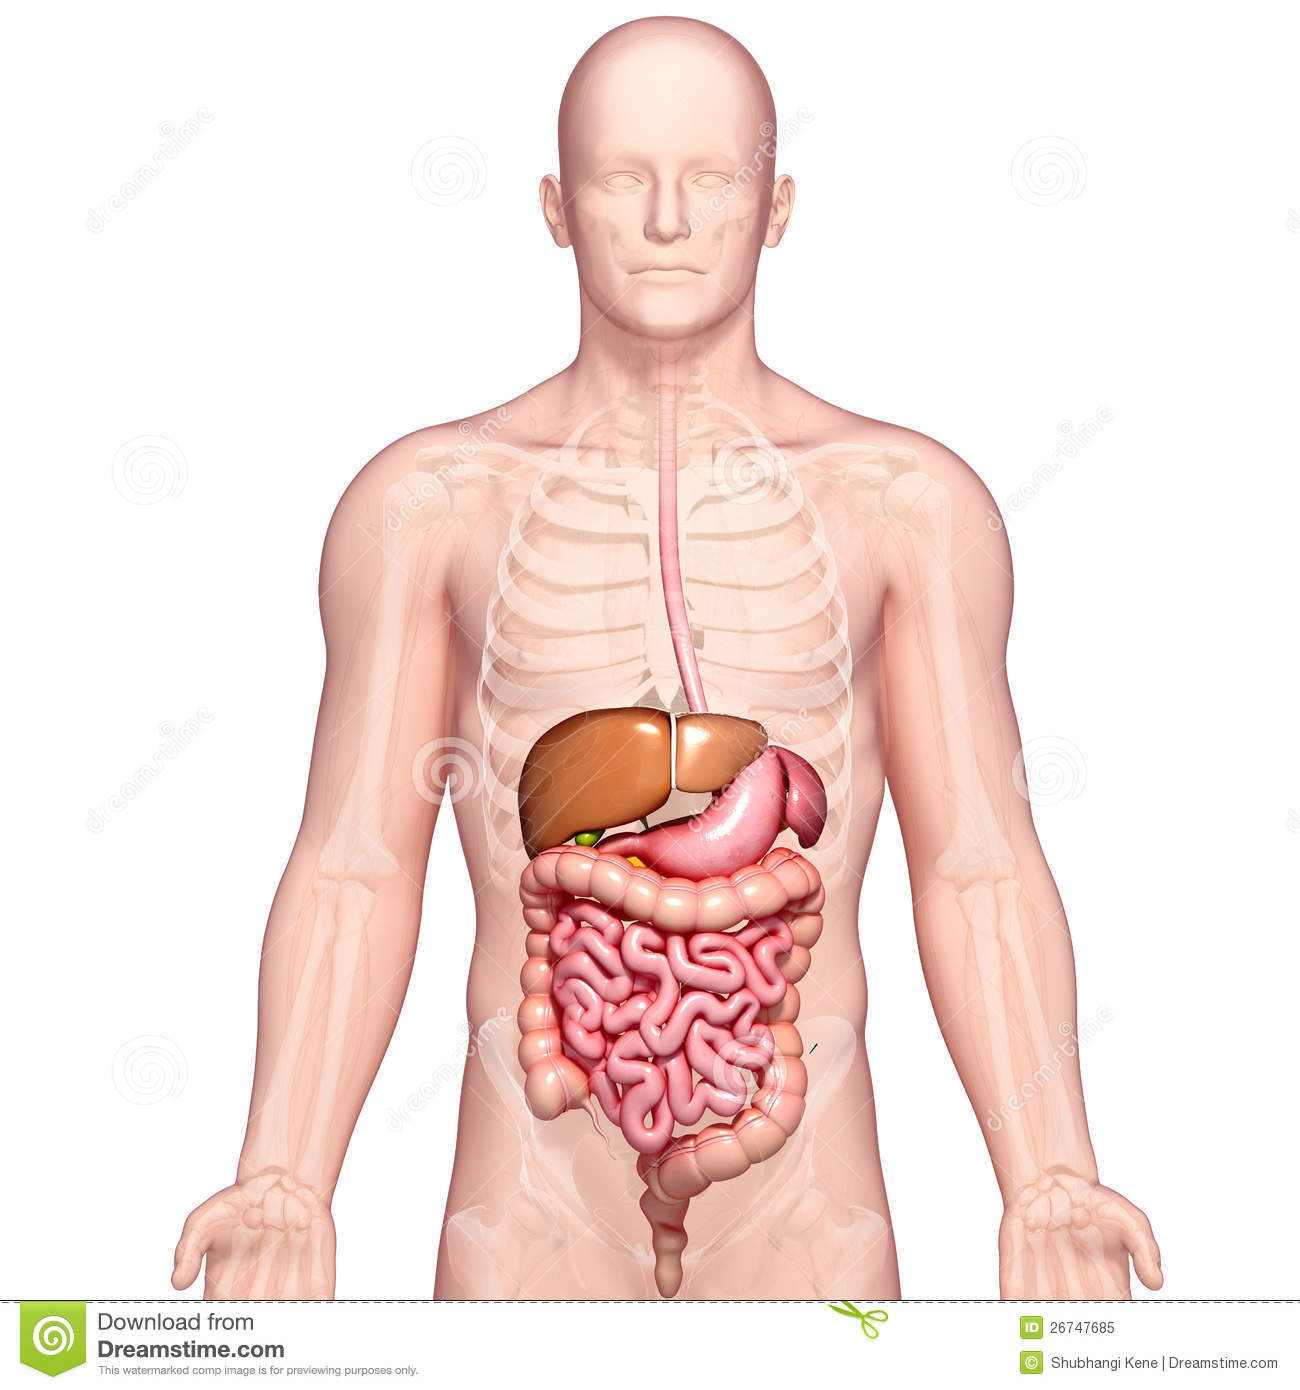 Anatomy Of Human Stomach And Liver Stock Illustration - Illustration ...